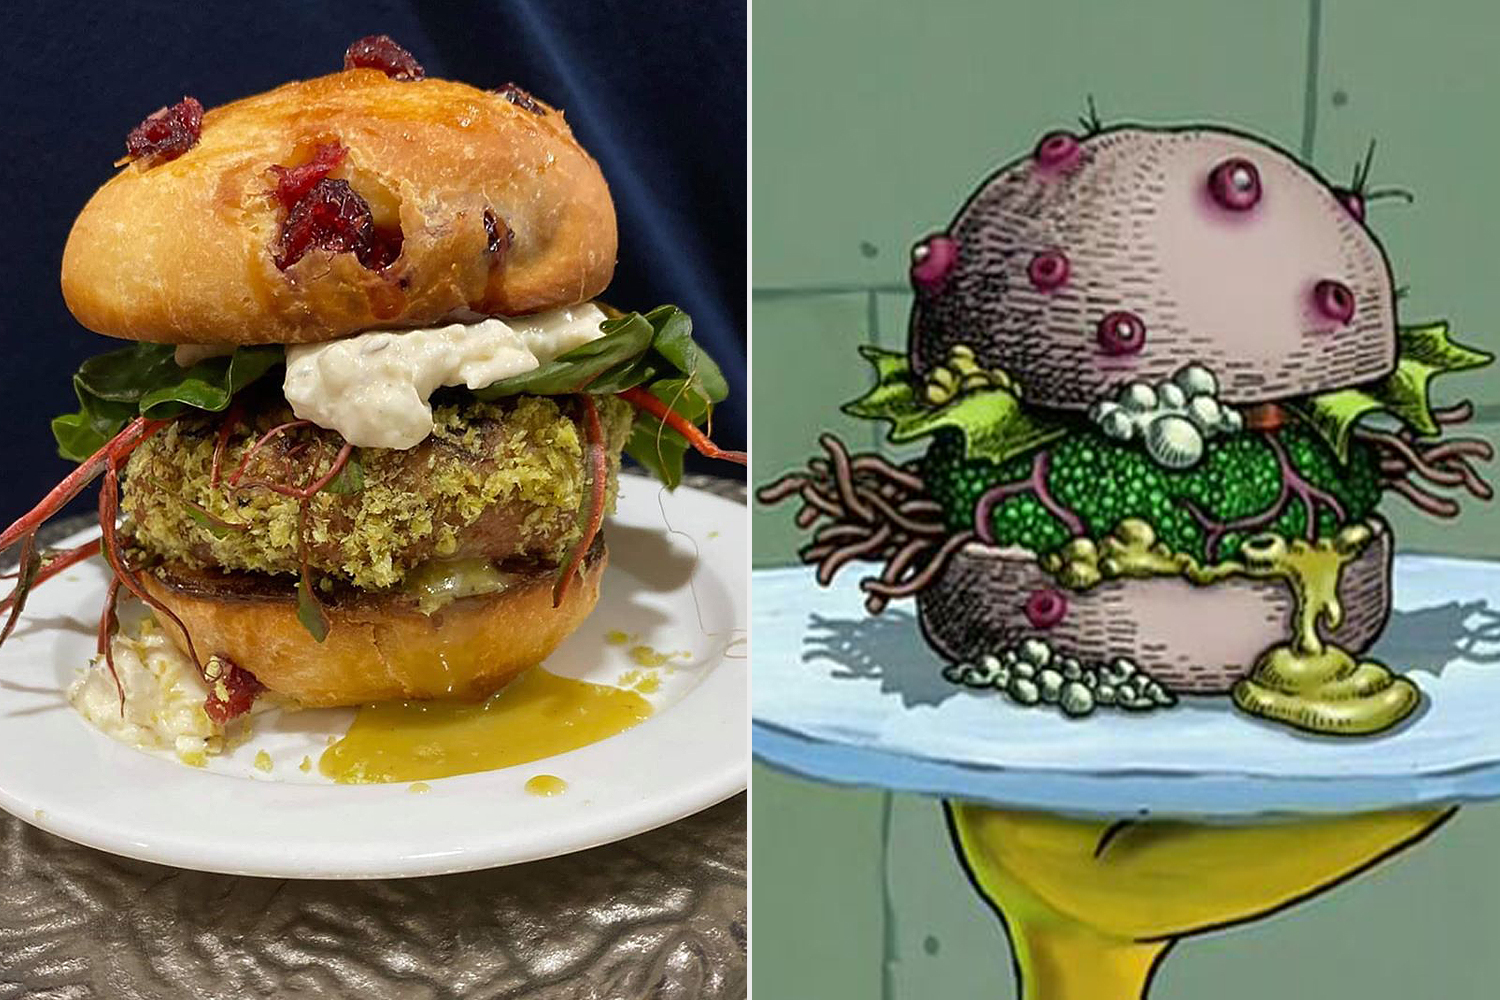 spongebob nasty patty